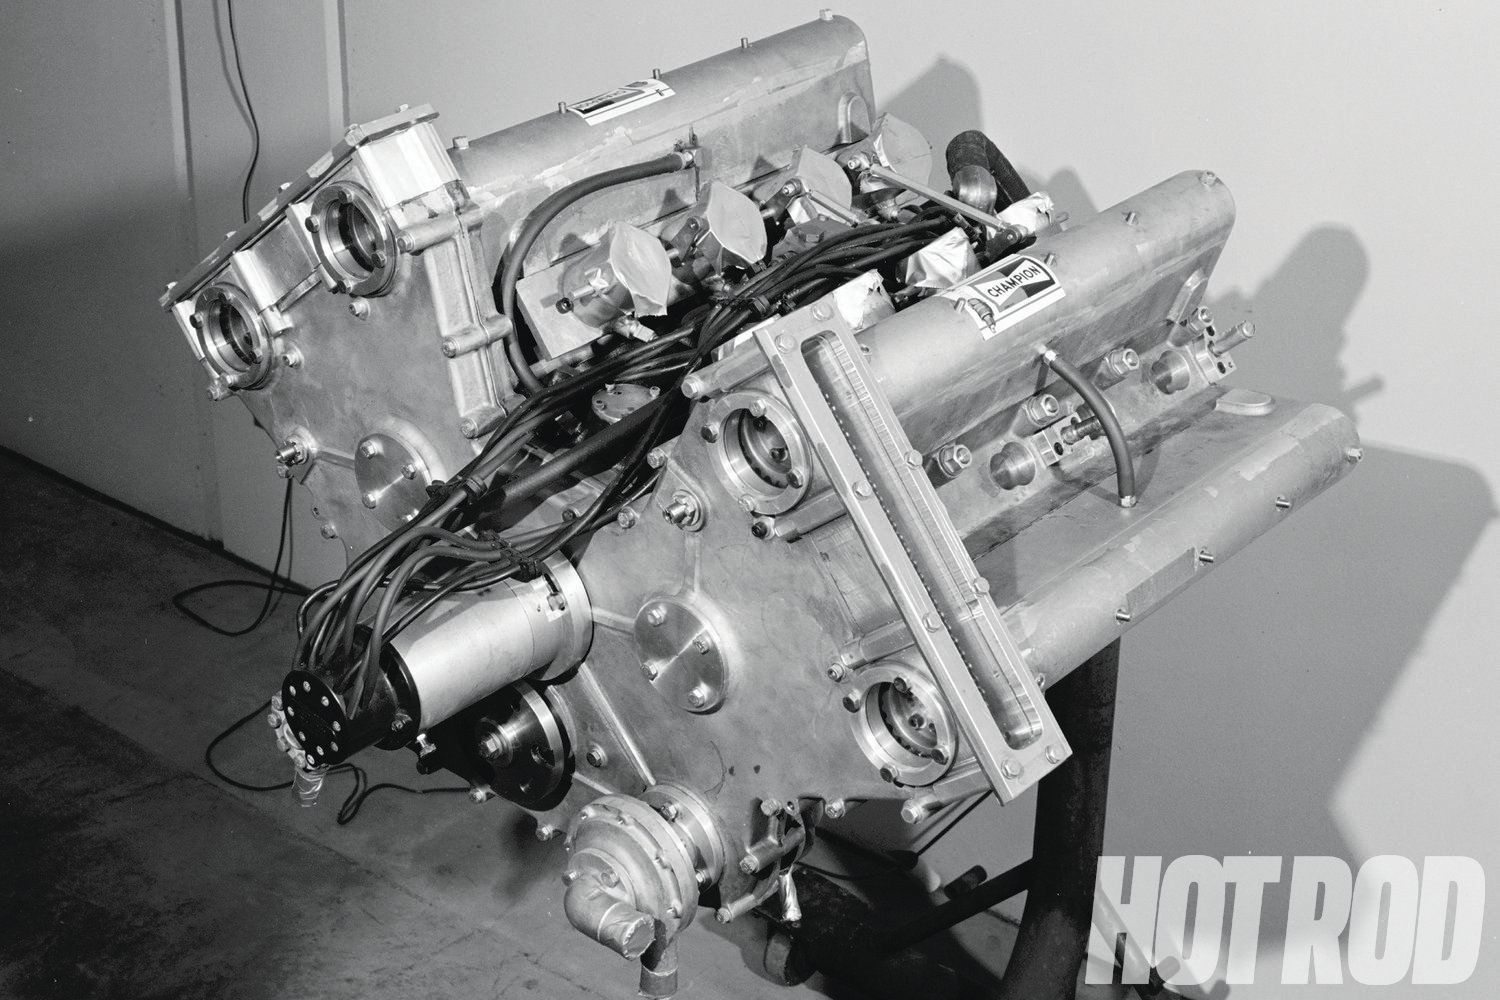 Mickey Thompson was developing a DOHC conversion for a 255ci Chevy to run at Indy. The engine was reported to make 500 hp at 8,500 rpm. These were the predecessors to the engine on the June '67 cover of HOT ROD.